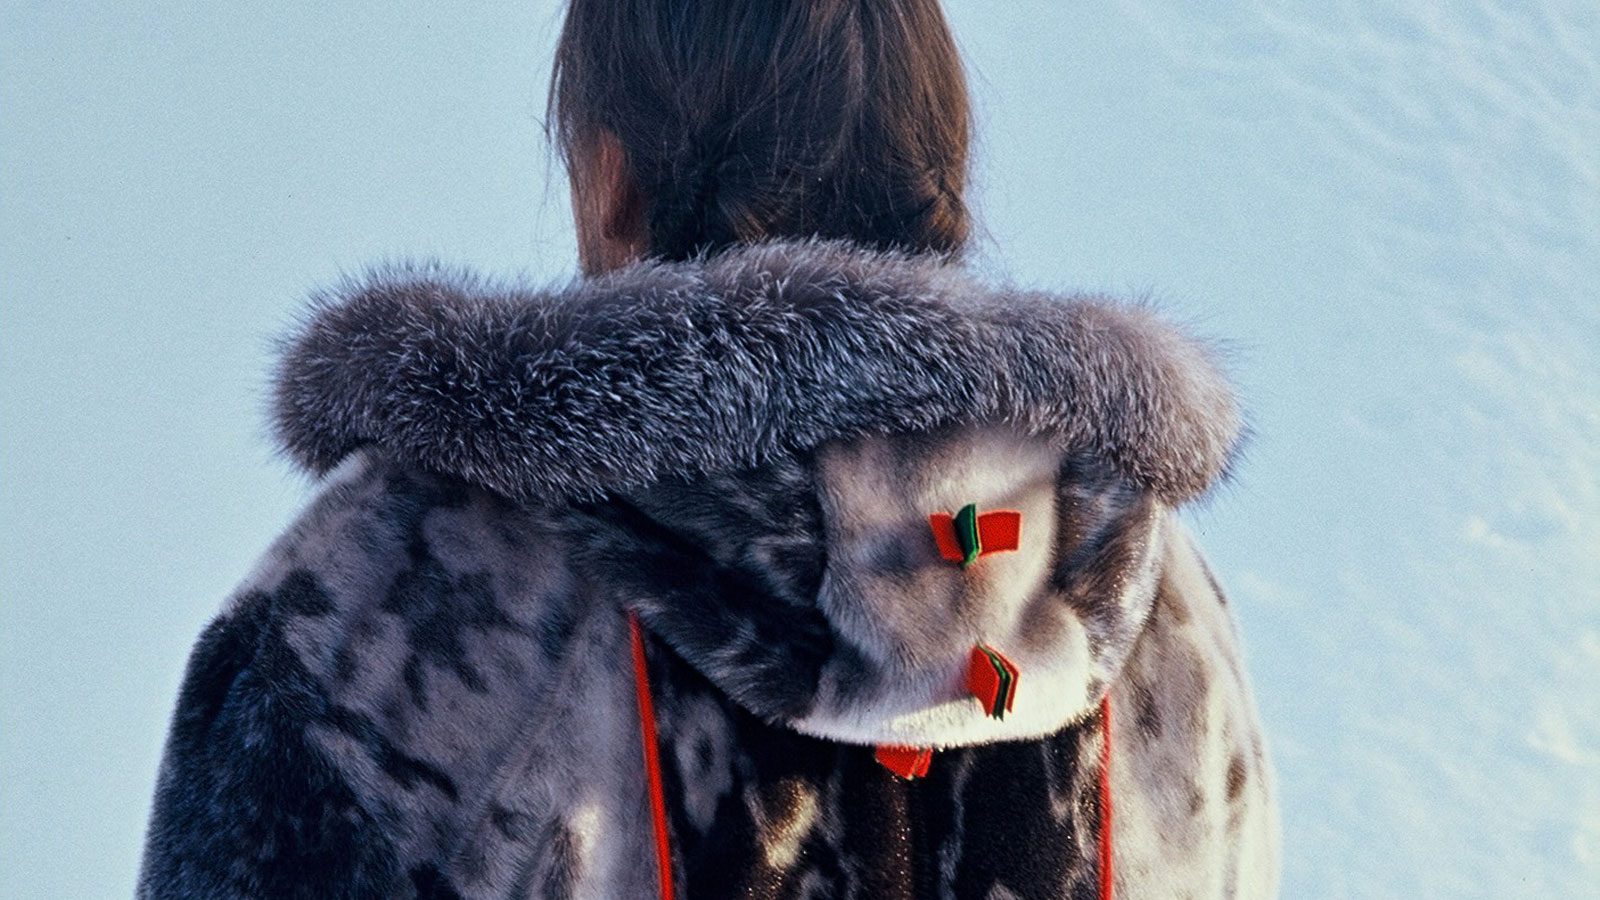 Coat made of sealskin, by Tapio Pittja. (Private / Radio Sweden)